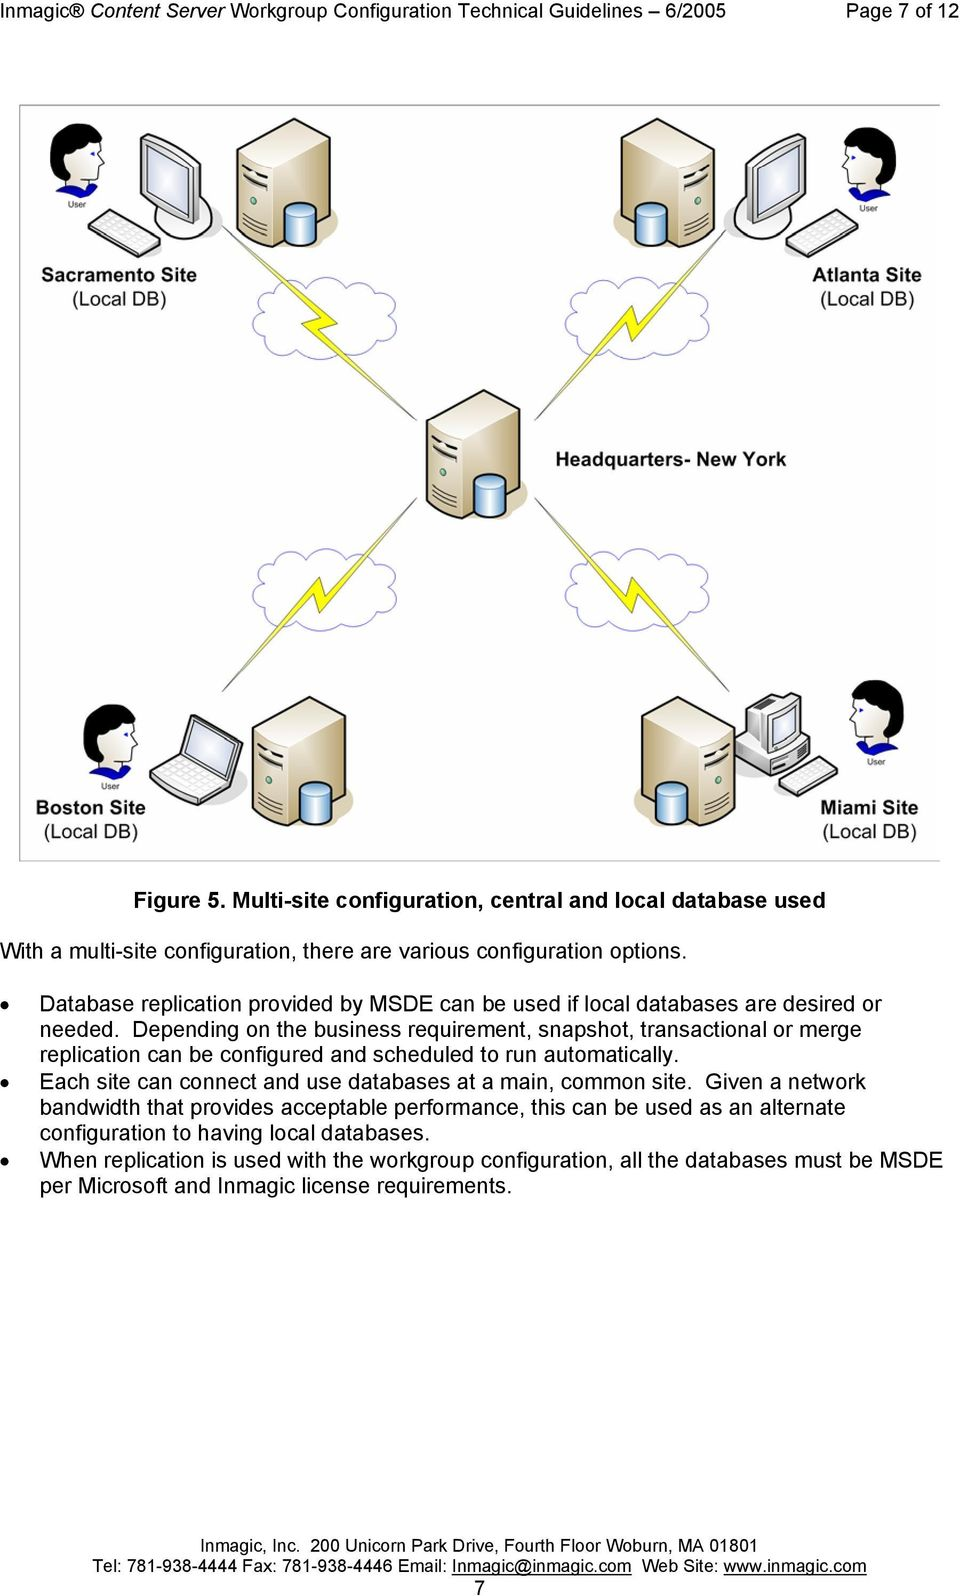 Database replication provided by MSDE can be used if local databases are desired or needed.